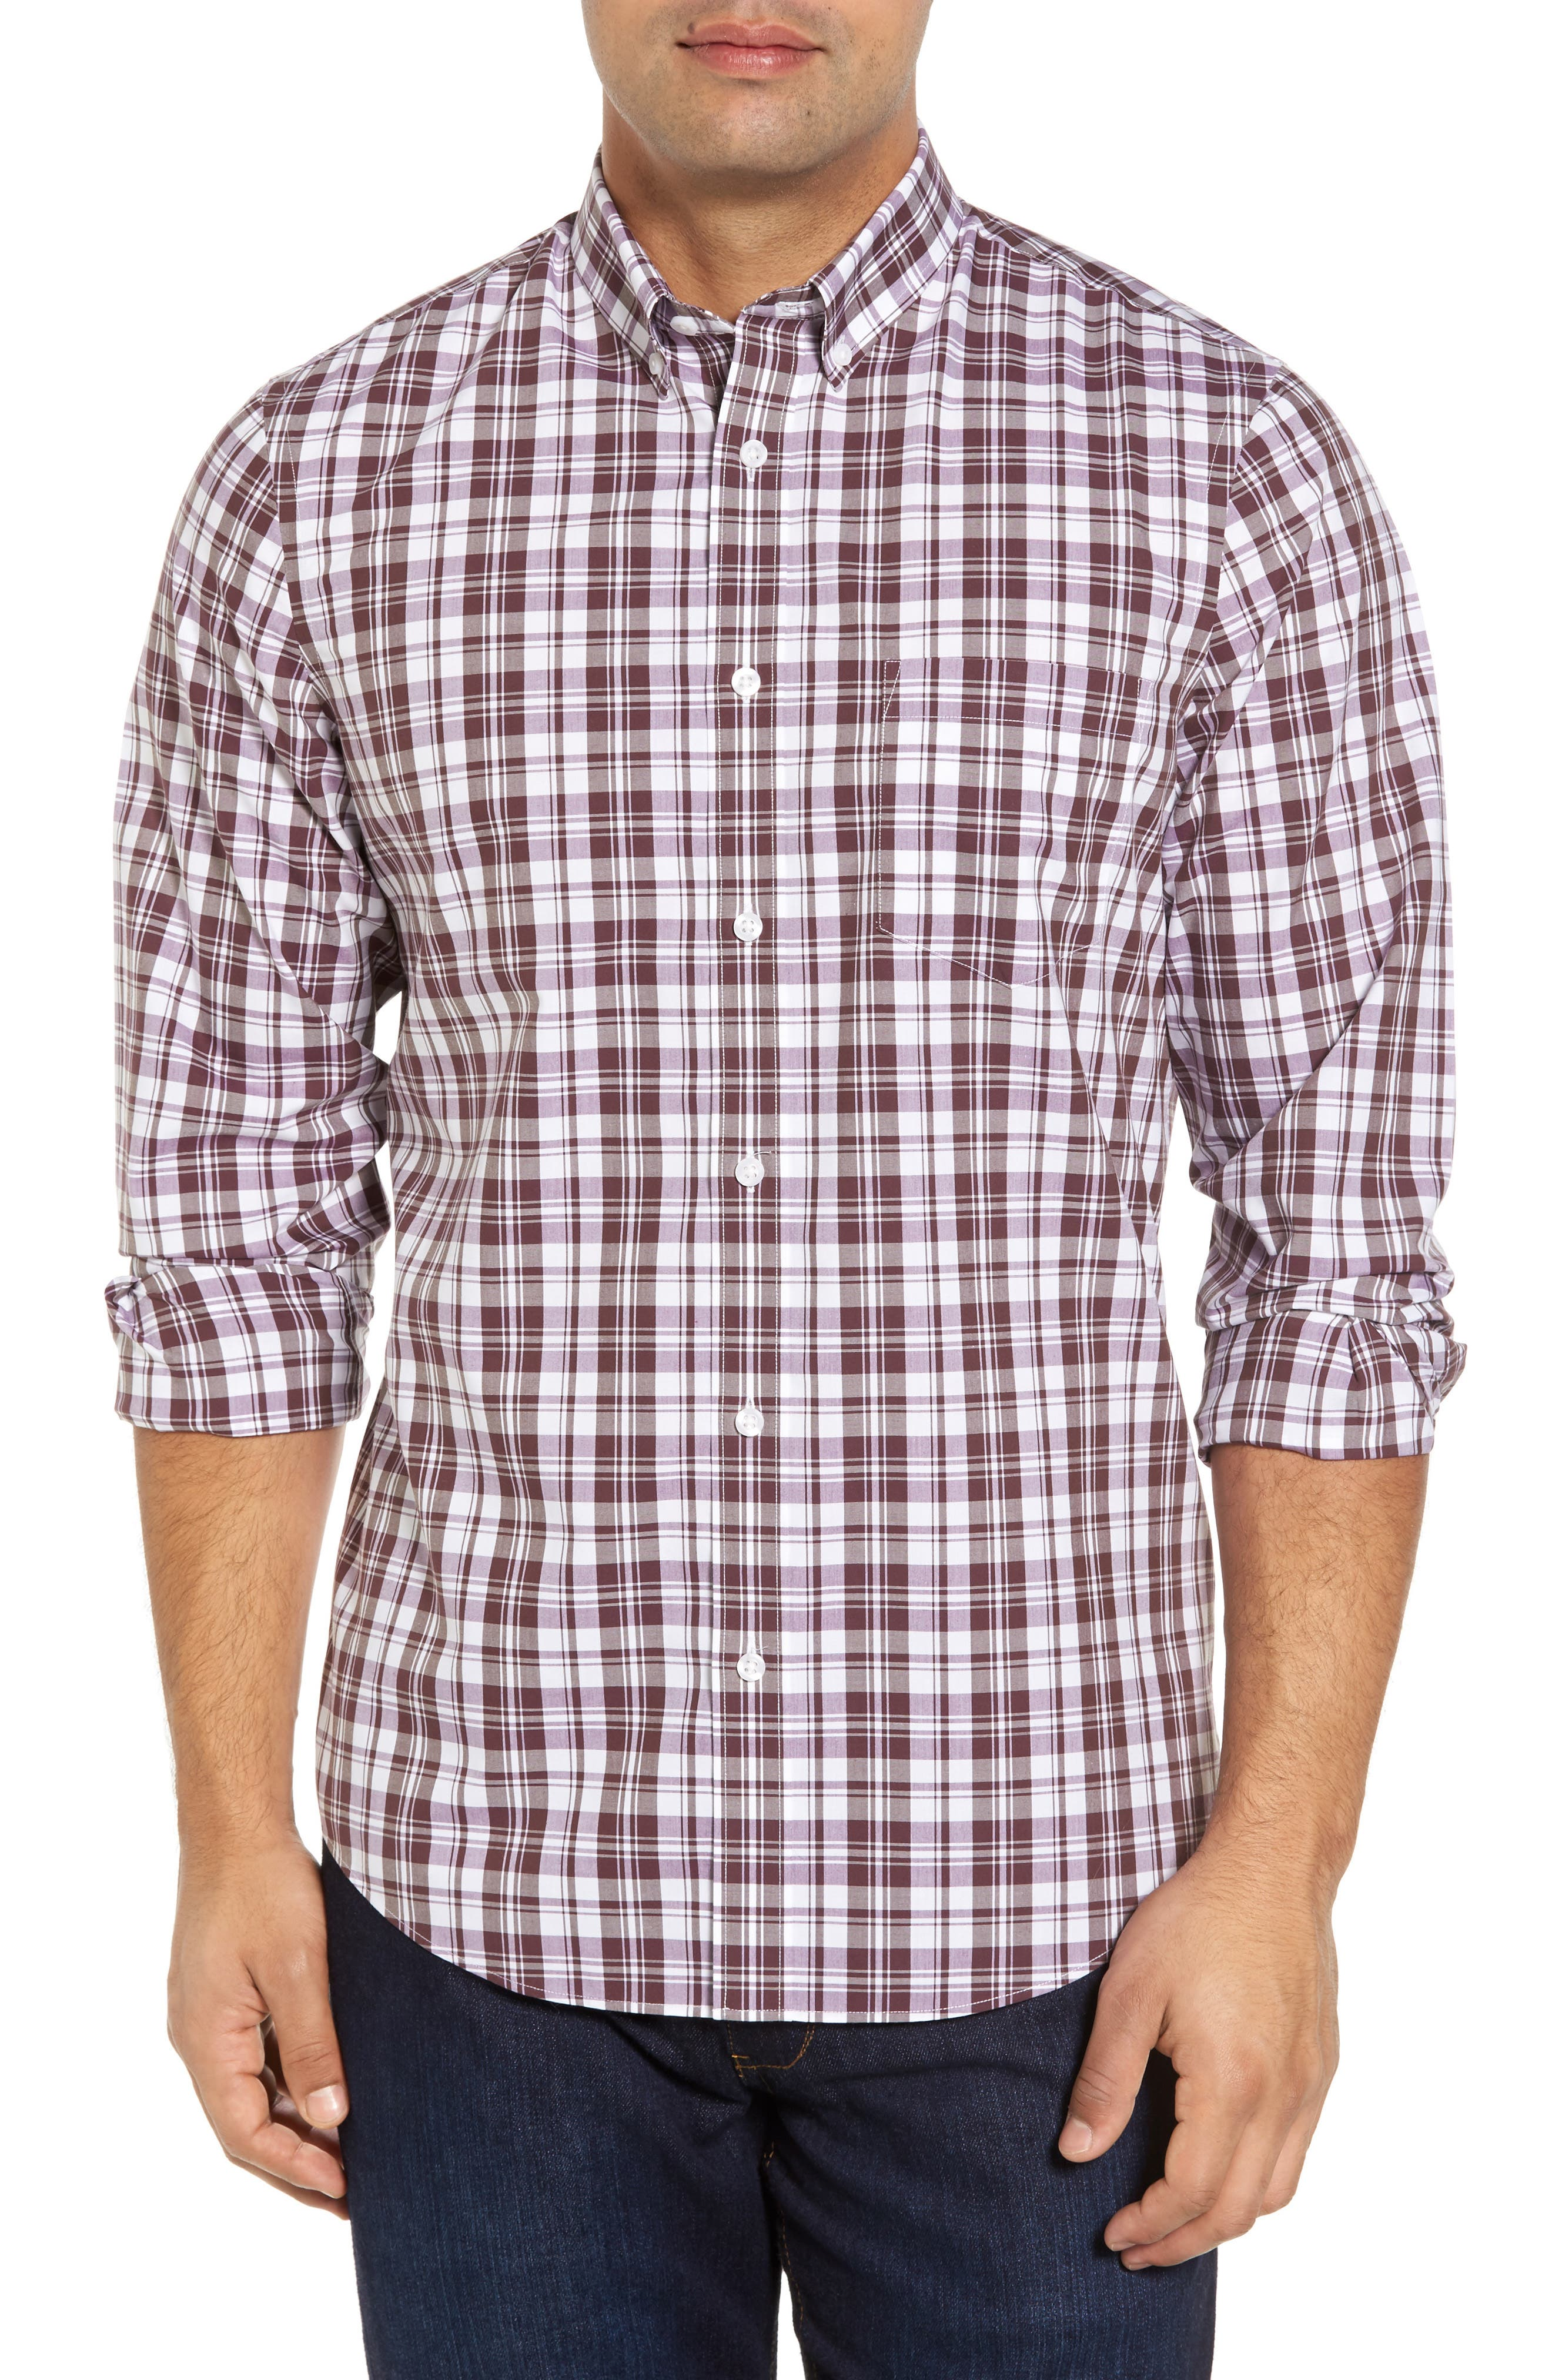 Smartcare<sup>™</sup> Regular Fit Plaid Sport Shirt,                         Main,                         color, Purple Plum White Plaid